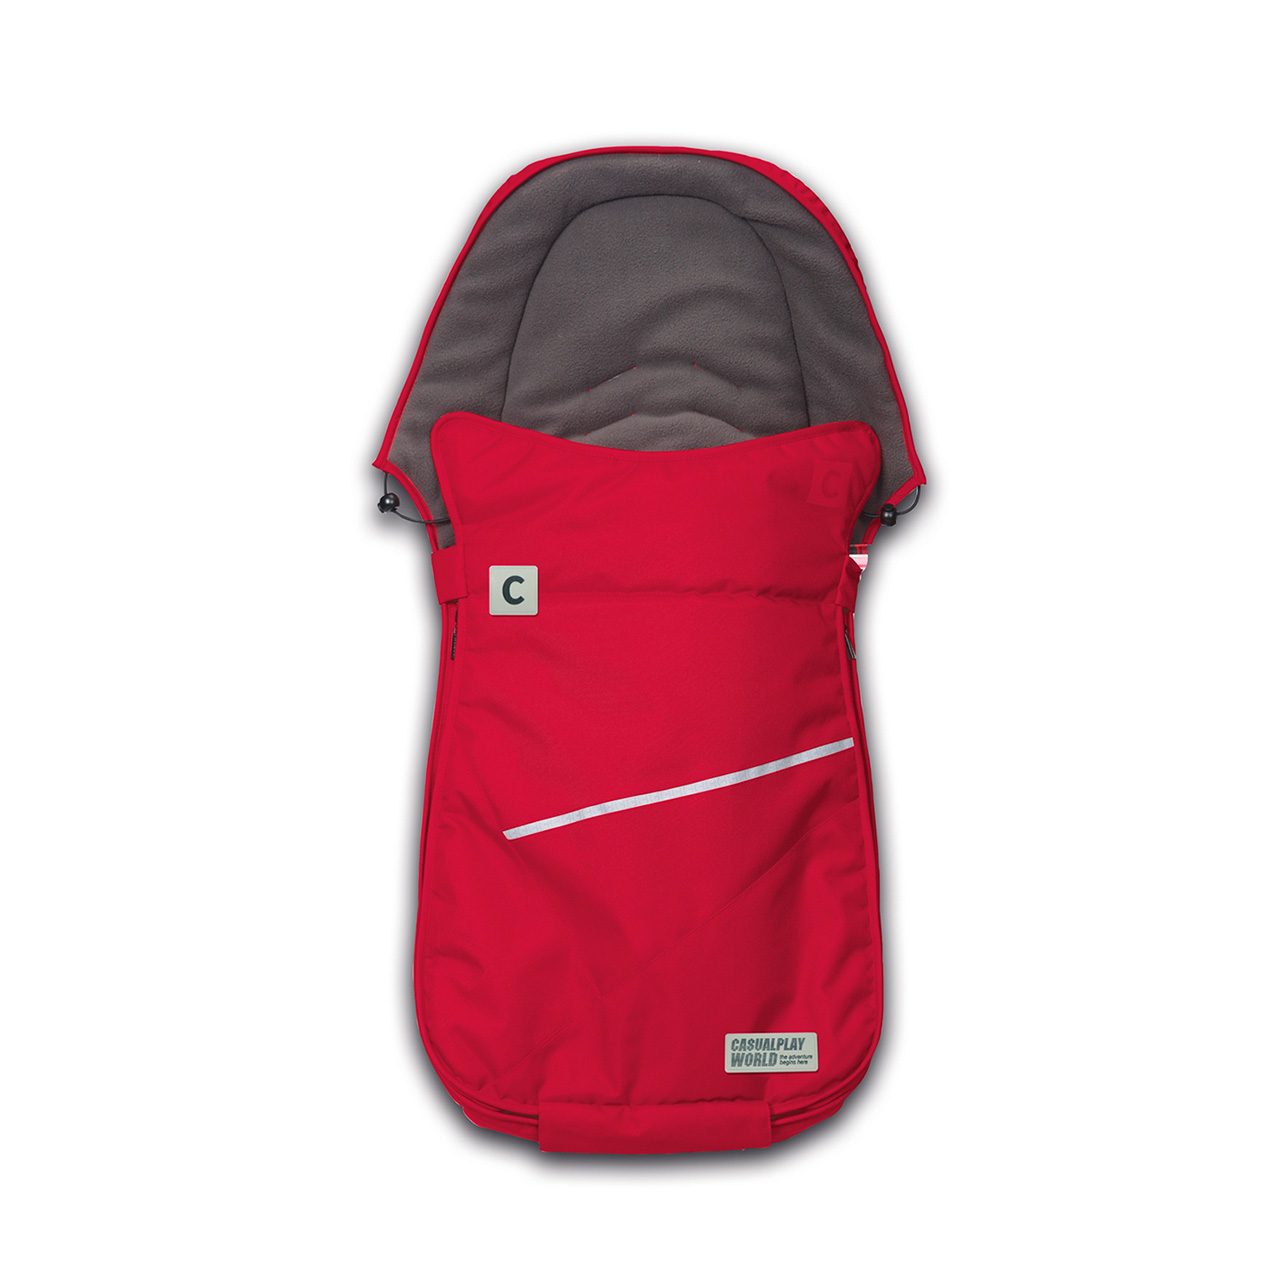 Casualplay fusak Sport Collection Raspberry 988